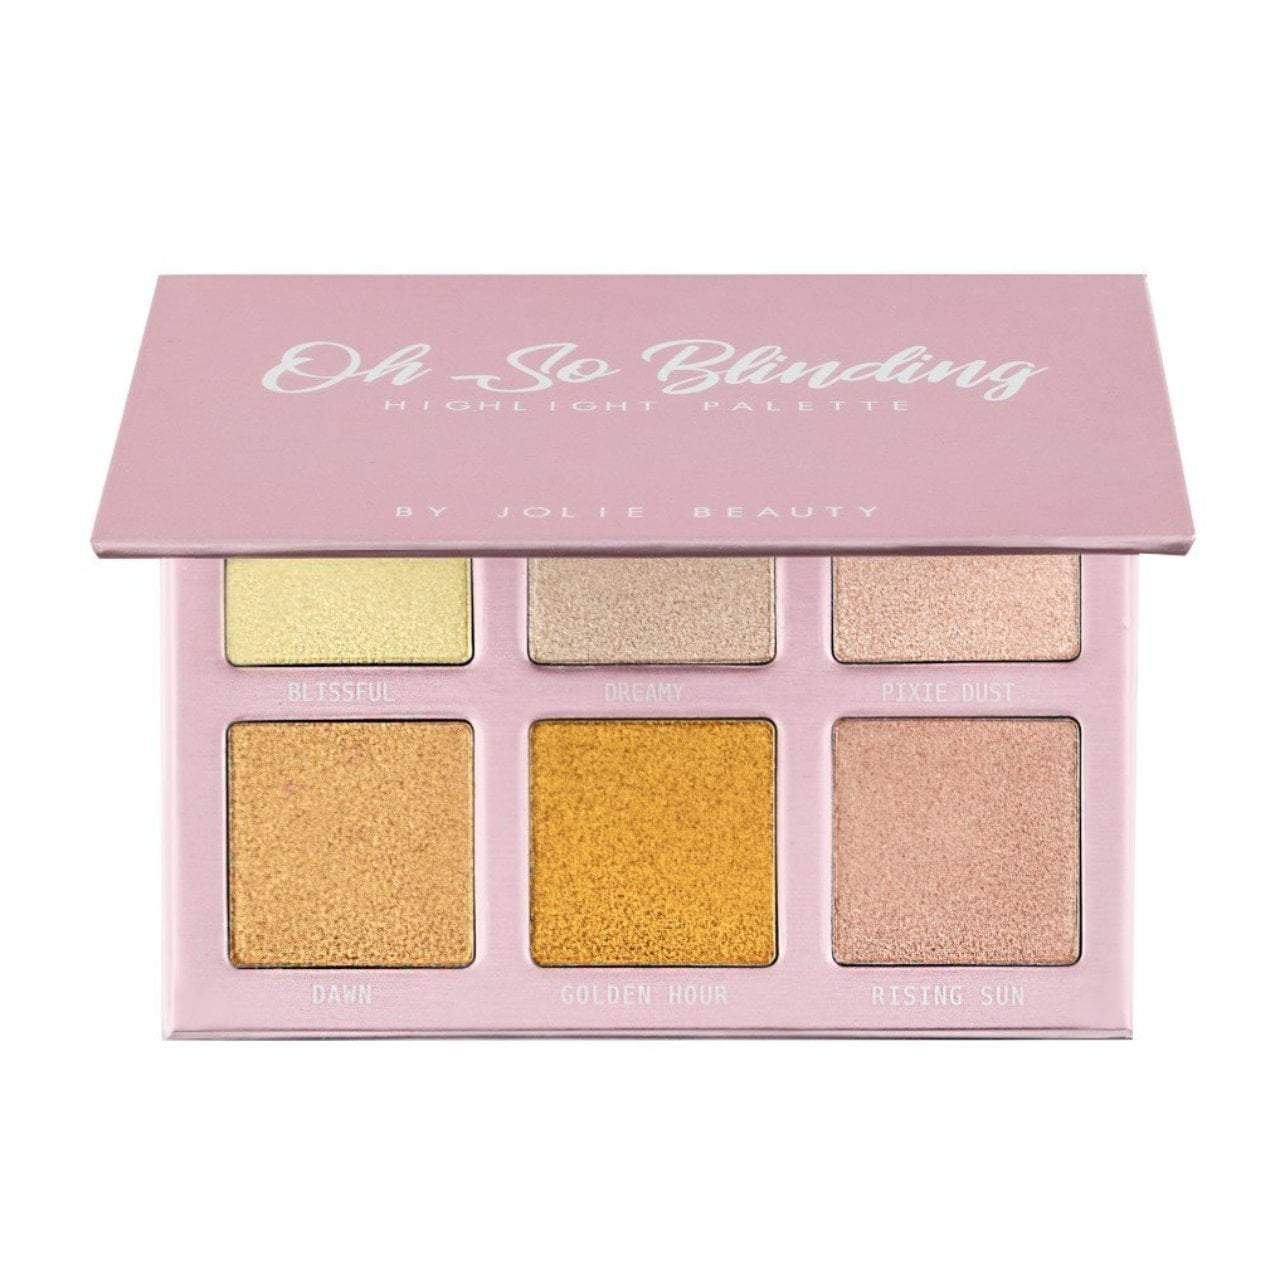 Oh So Blinding Highlighter Palette